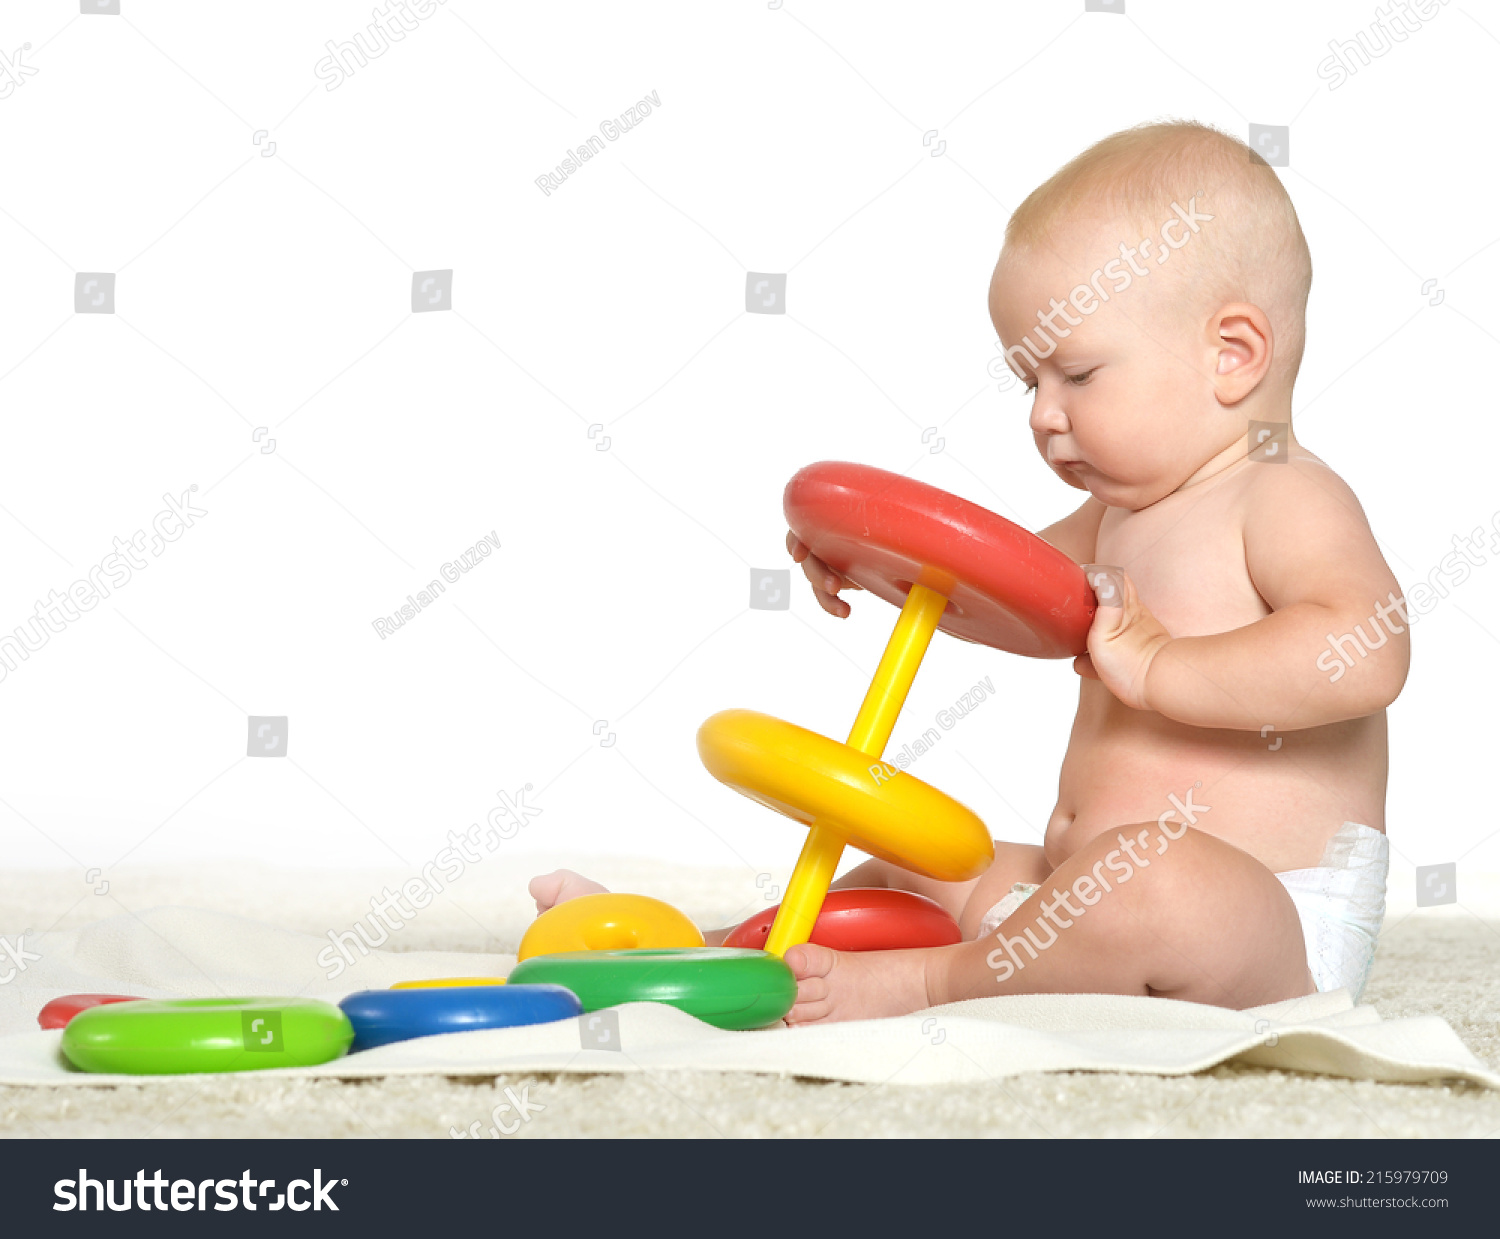 Boy Toys Background : Baby boy playing with toys on a white background stock